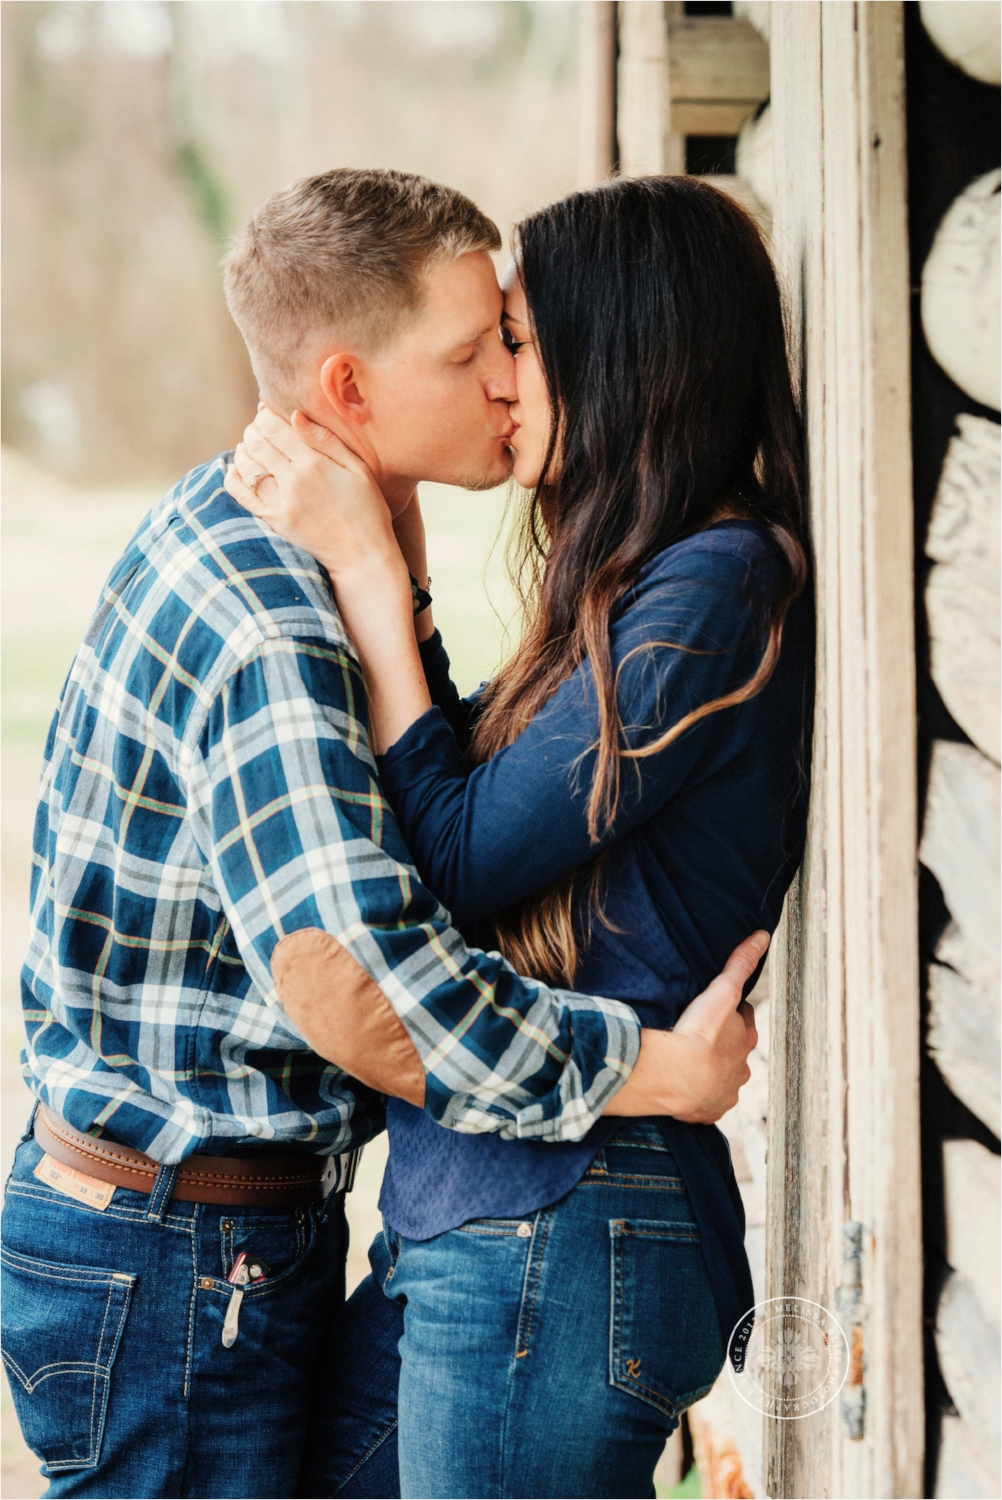 norfolk-engagement-photographer-rustic-engagement-session-in-smithfield-va-romantic-couple